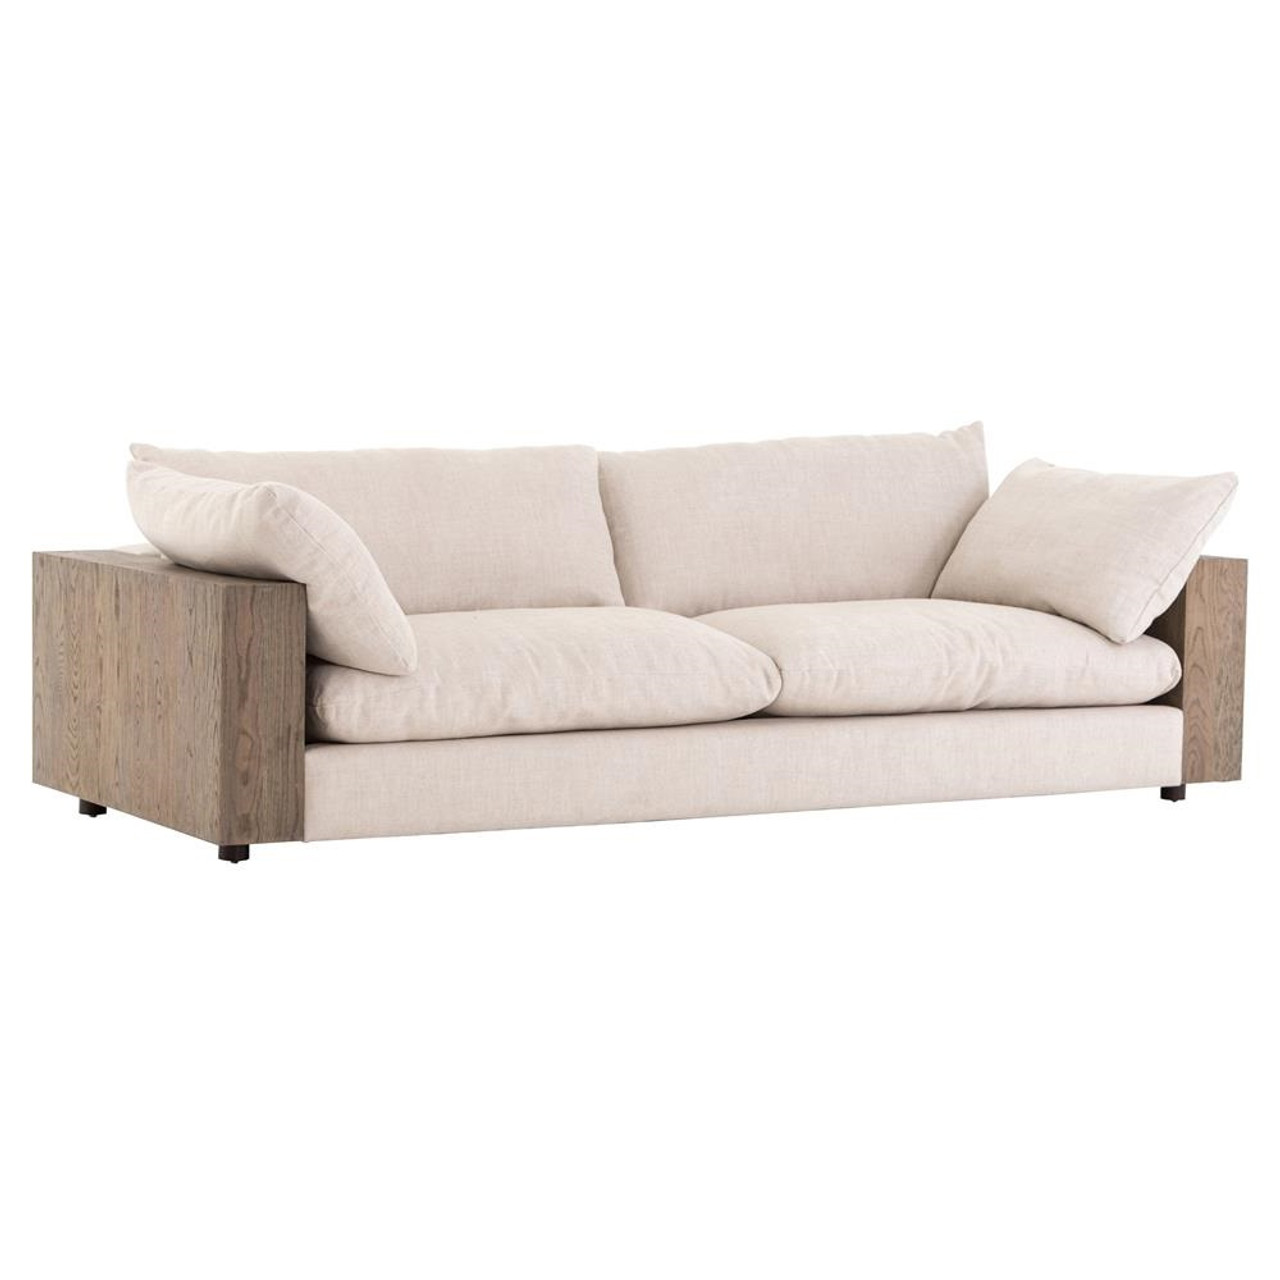 Bernard beige cushion back exposed oak wood frame sofa